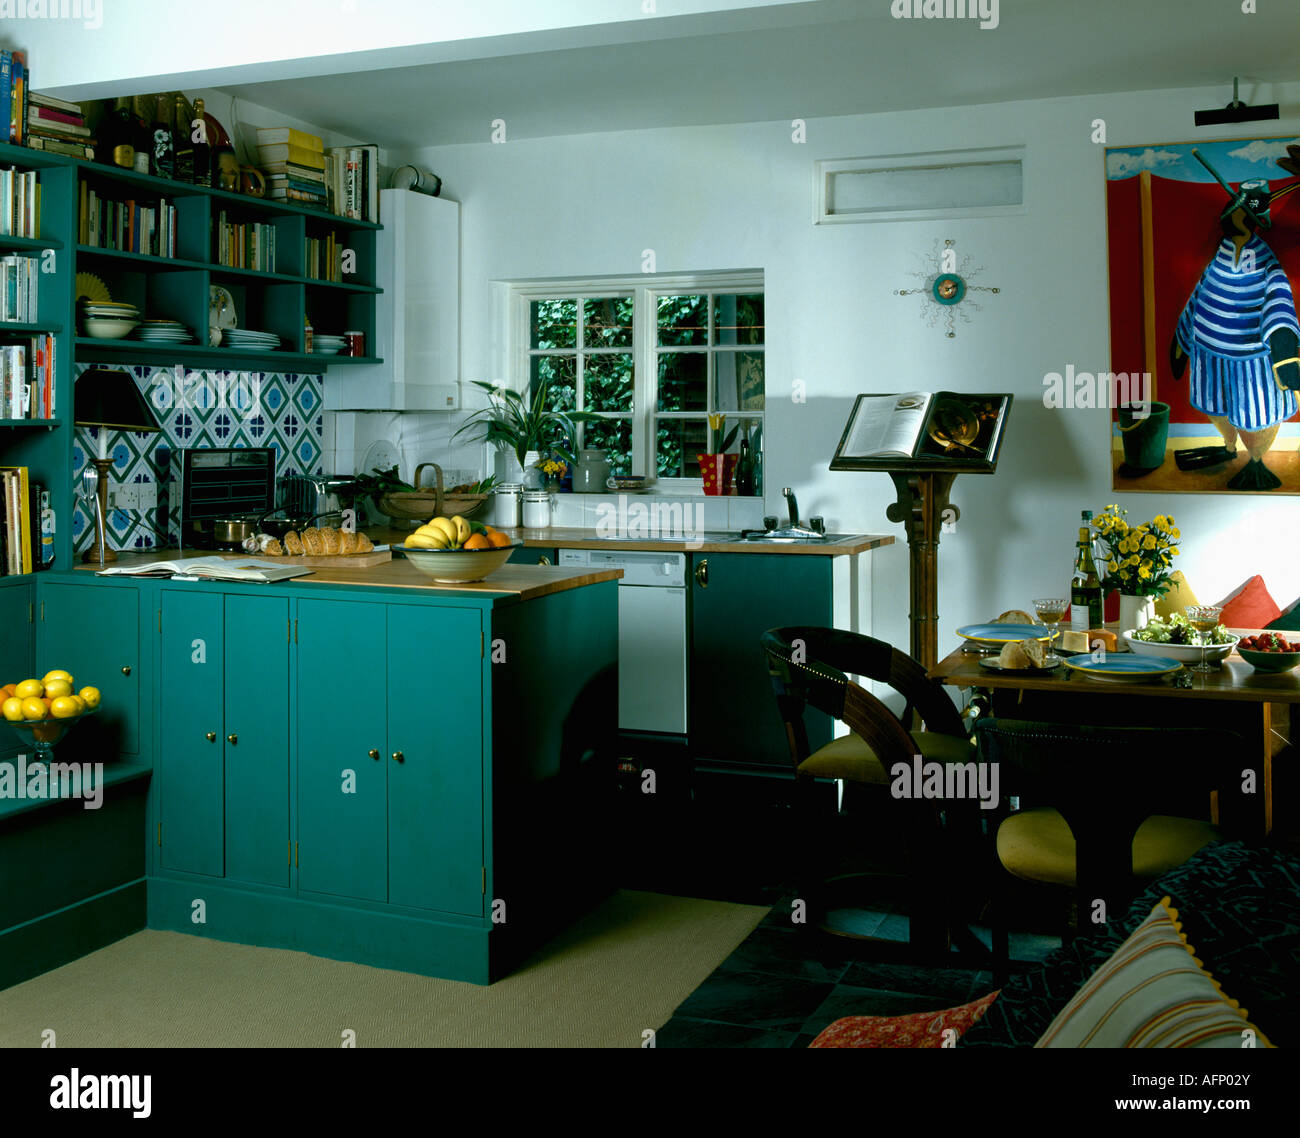 Interiors Archival Kitchens Town Stock Photos & Interiors Archival ...